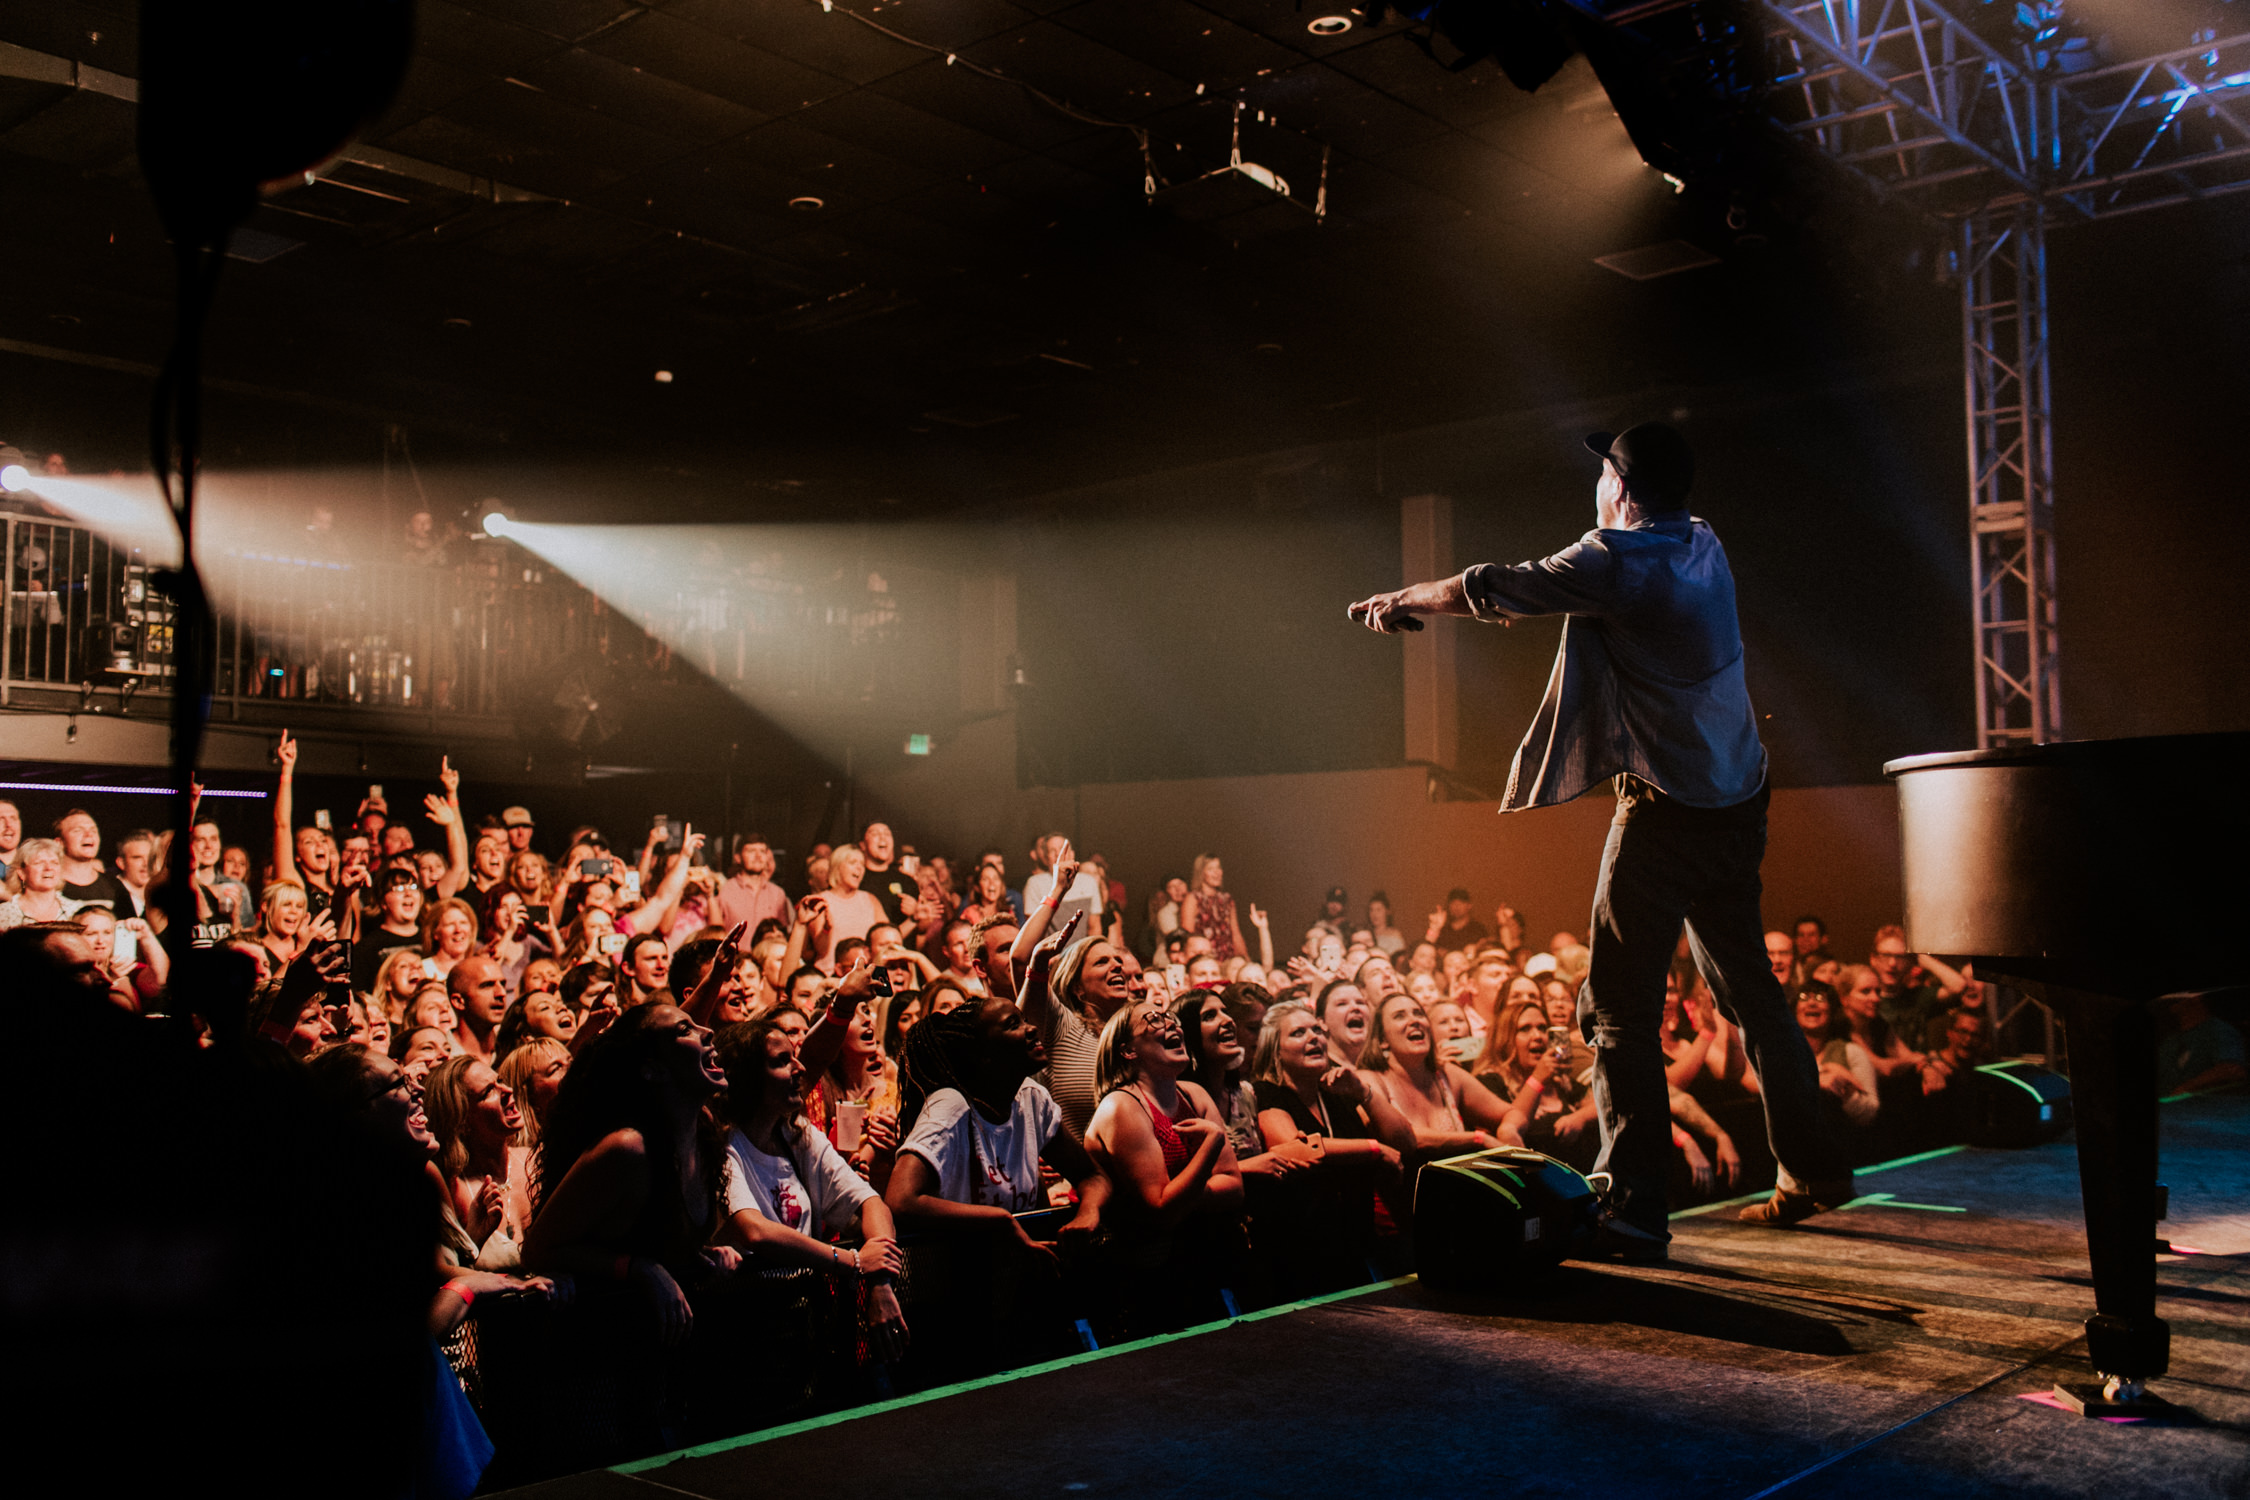 gavin-degraw-concert-upstage-cheering-crowd-AnnaLeeMedia